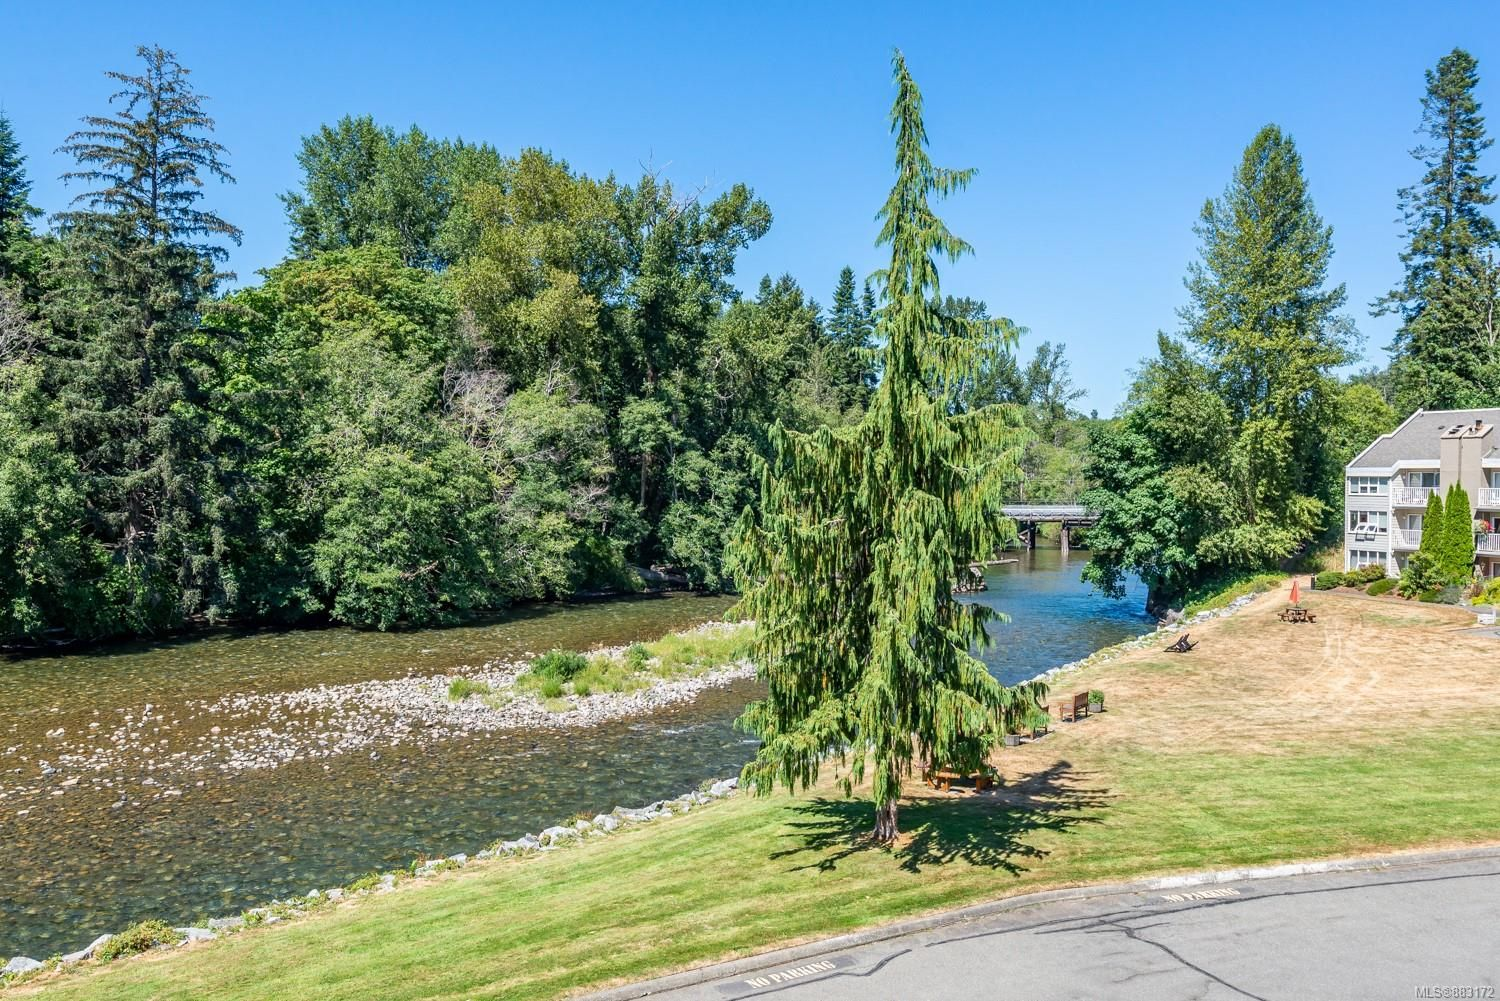 Photo 27: Photos: 303 205 1st St in : CV Courtenay City Row/Townhouse for sale (Comox Valley)  : MLS®# 883172